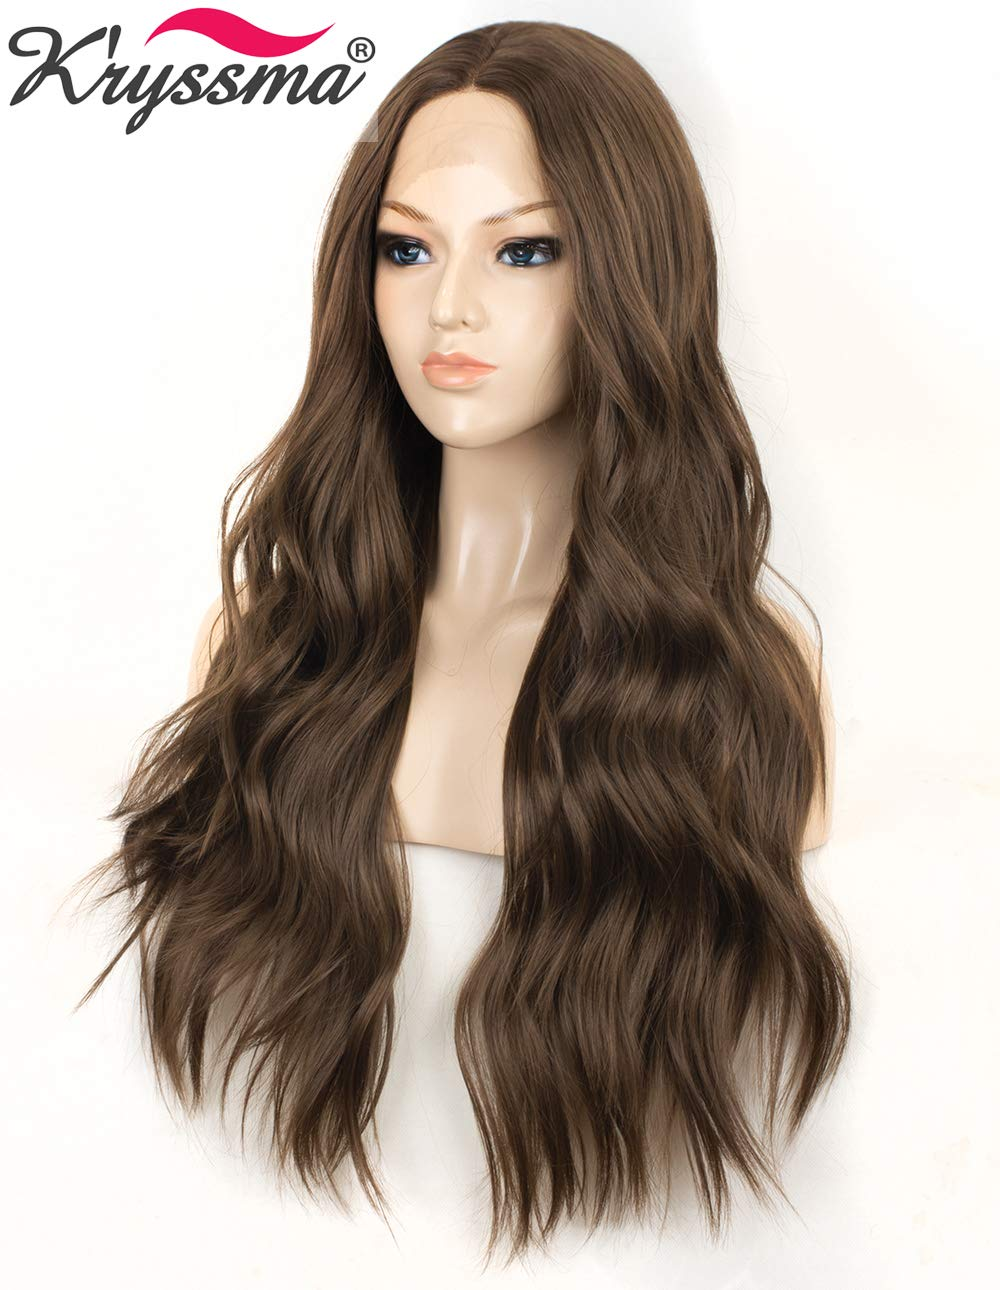 K'ryssma Fashion Brown Lace Front Wigs for Women Long Wavy Synthetic Wig Middle Parting Heat Resistant Glueless Brown Wig 22 inches by K'ryssma